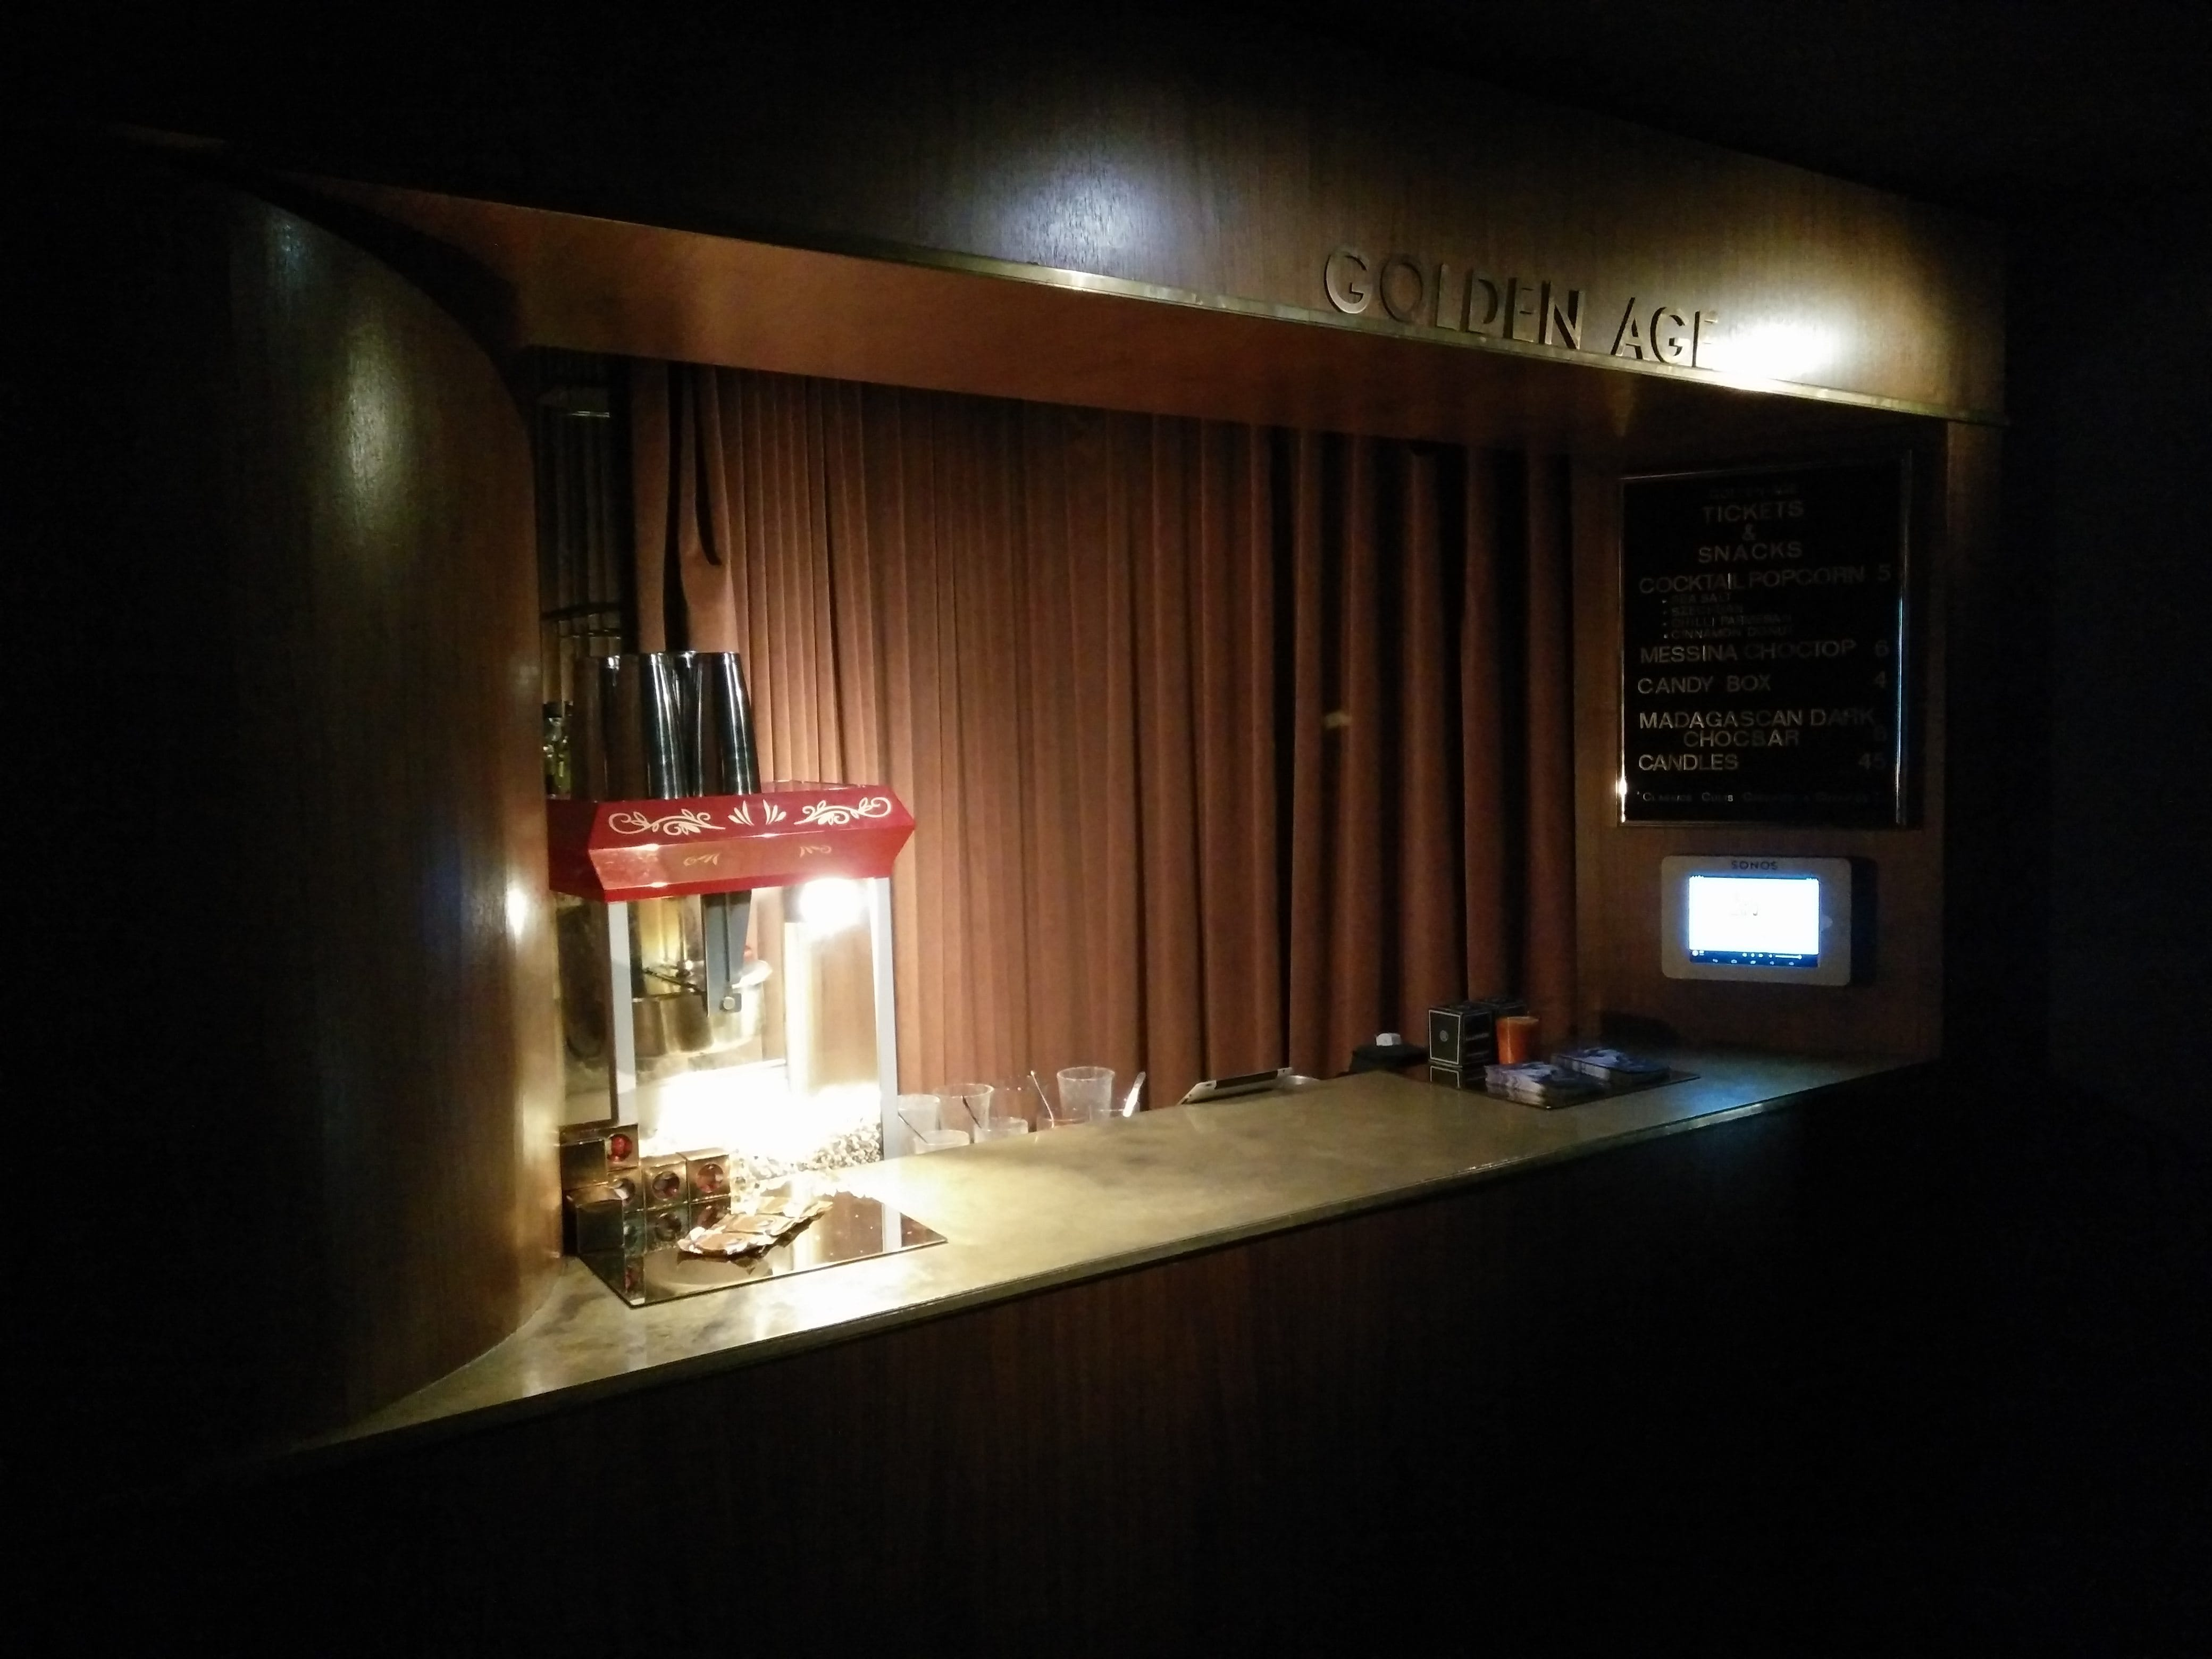 The concessions stand at the Golden Age Cinema in Sydney, Australia.